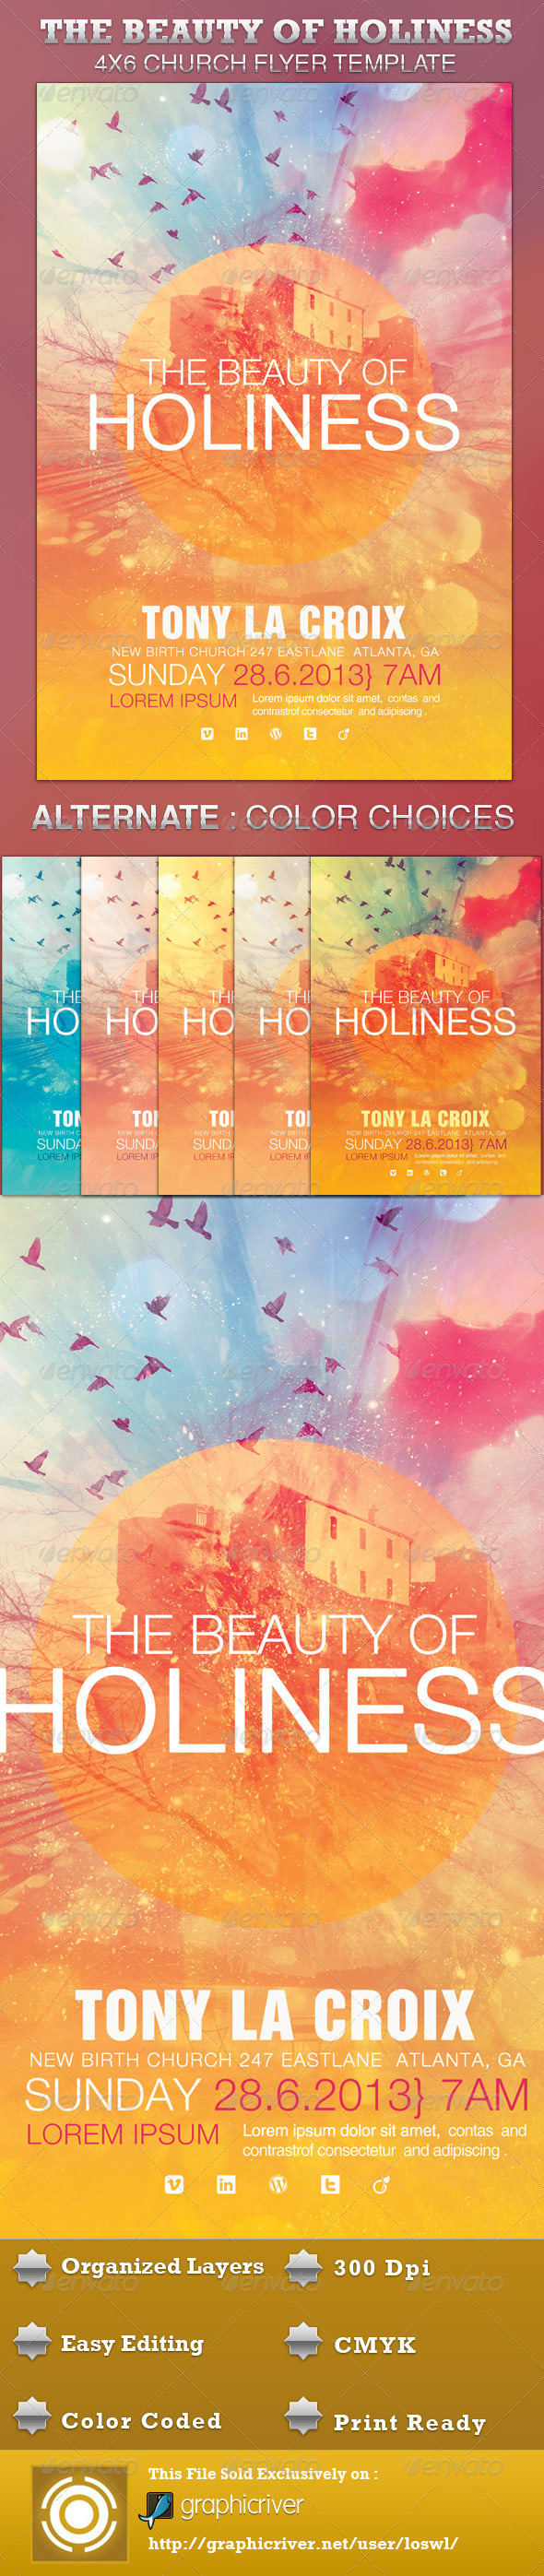 The Beauty of Holiness Church Flyer Template - Church Flyers